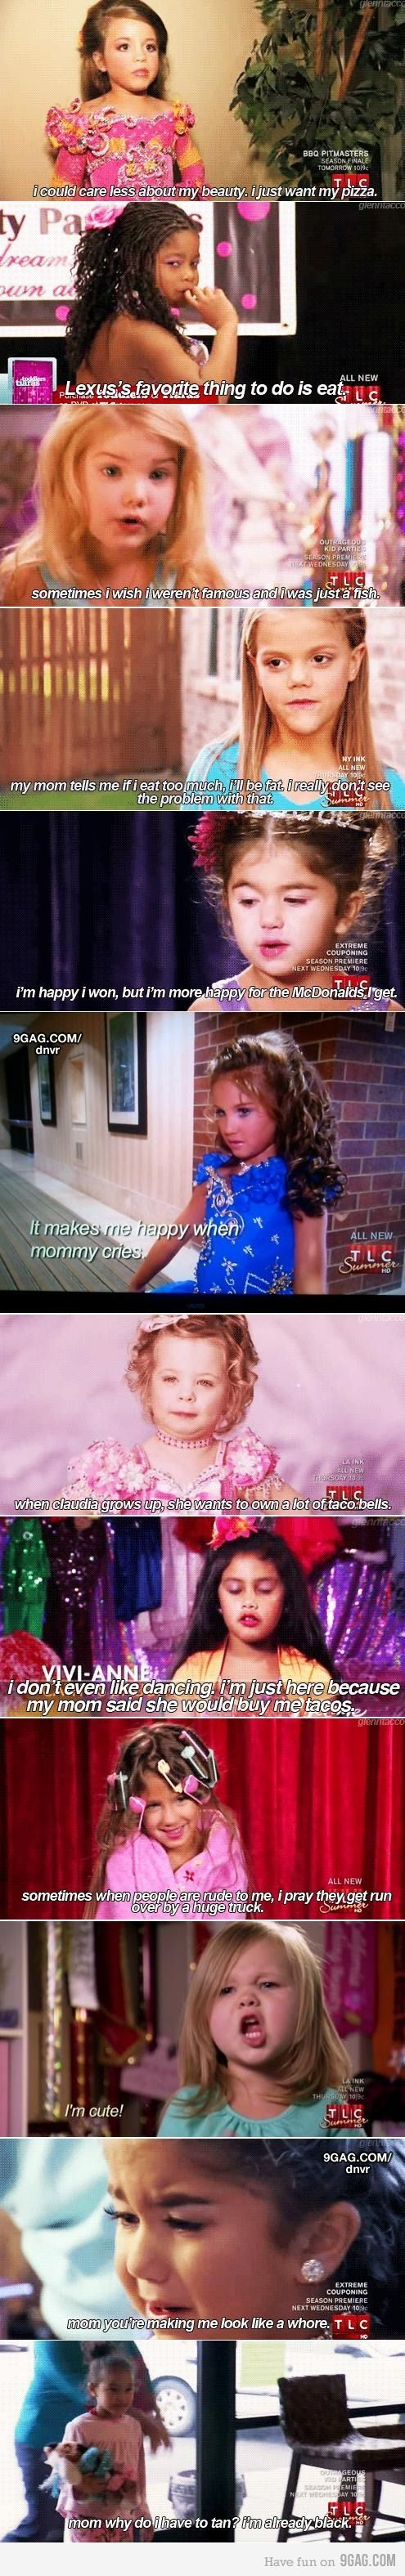 lmao. The kids have it all figured out.